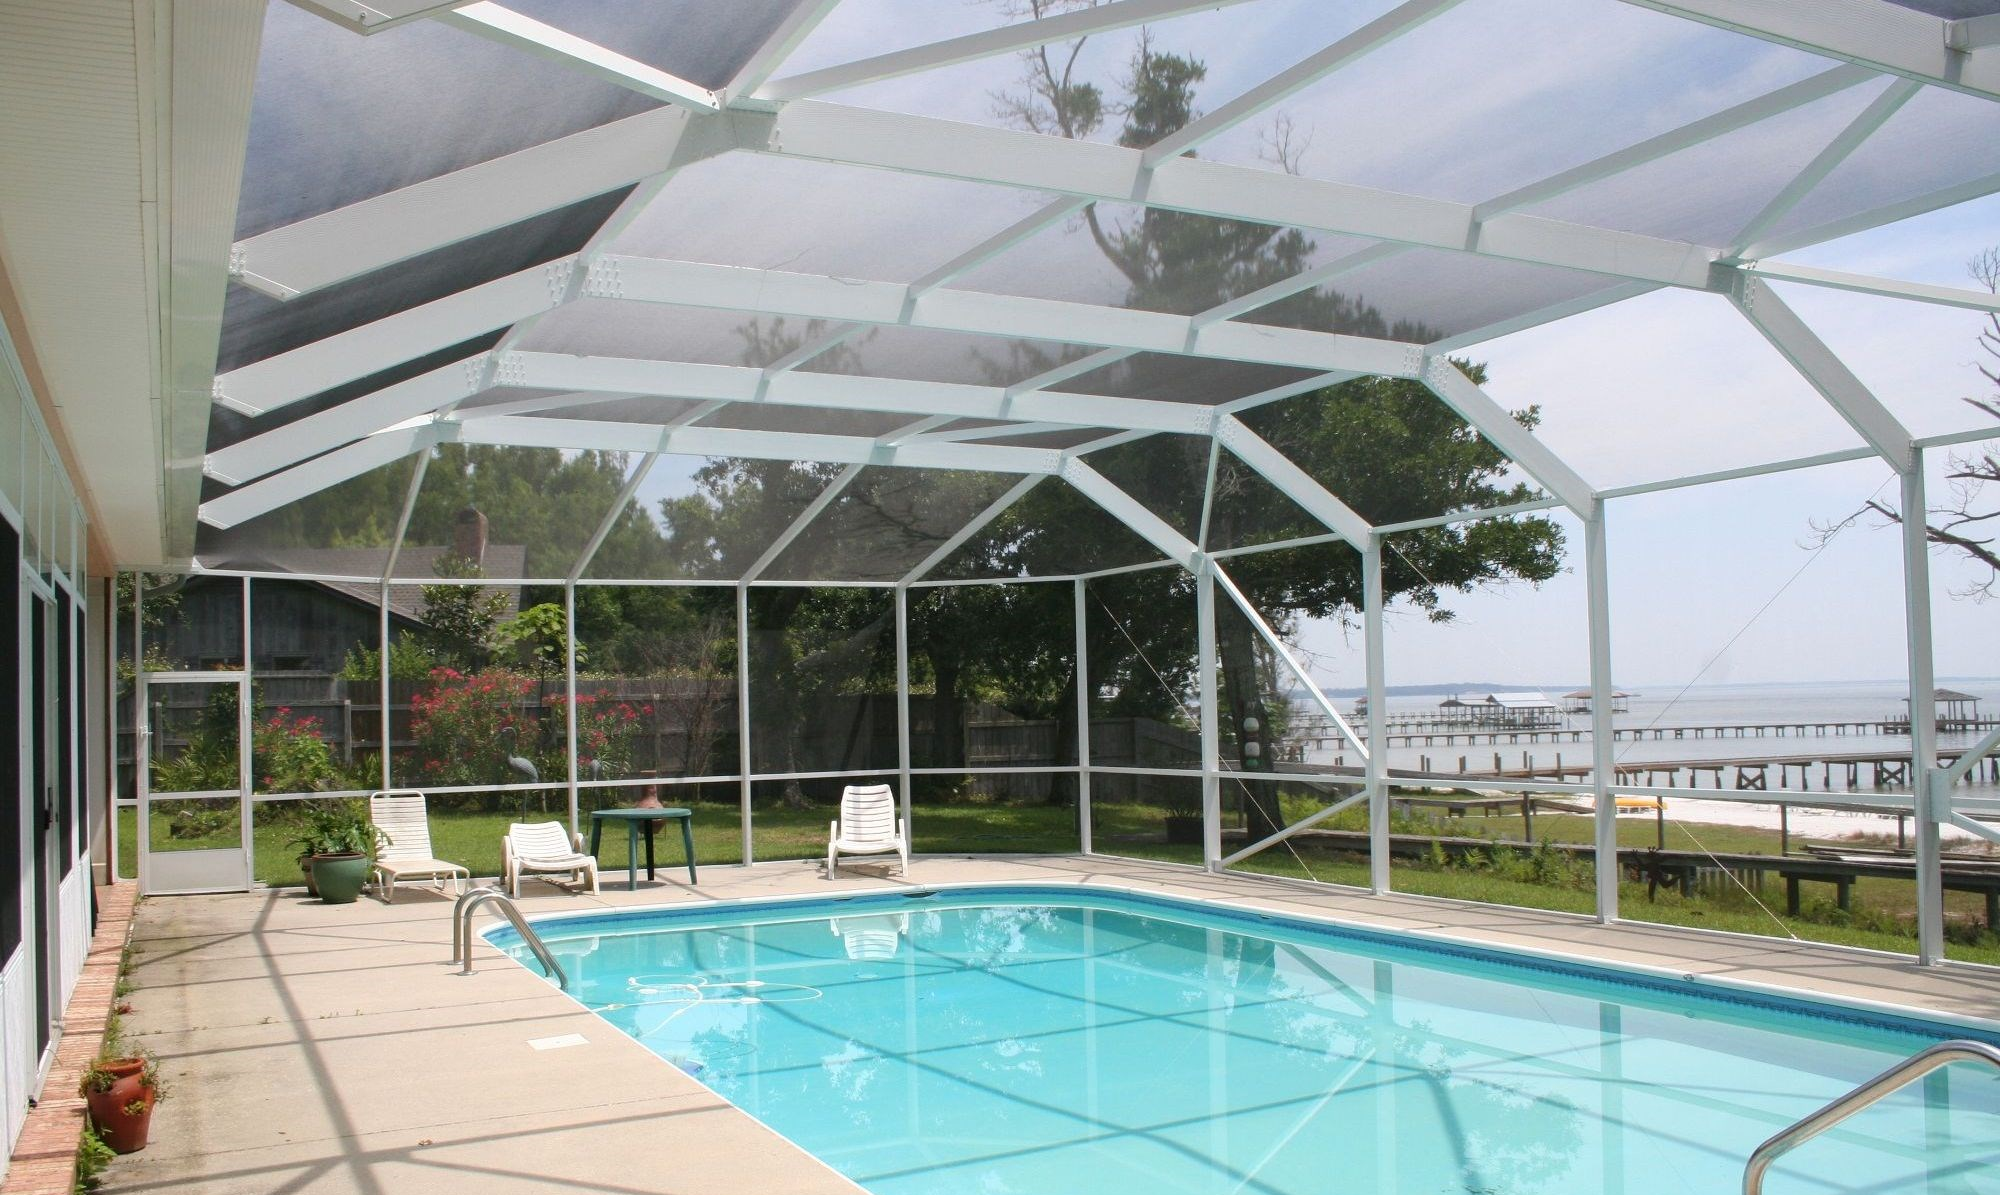 Pool Screen Enclosure Screenmobile Com